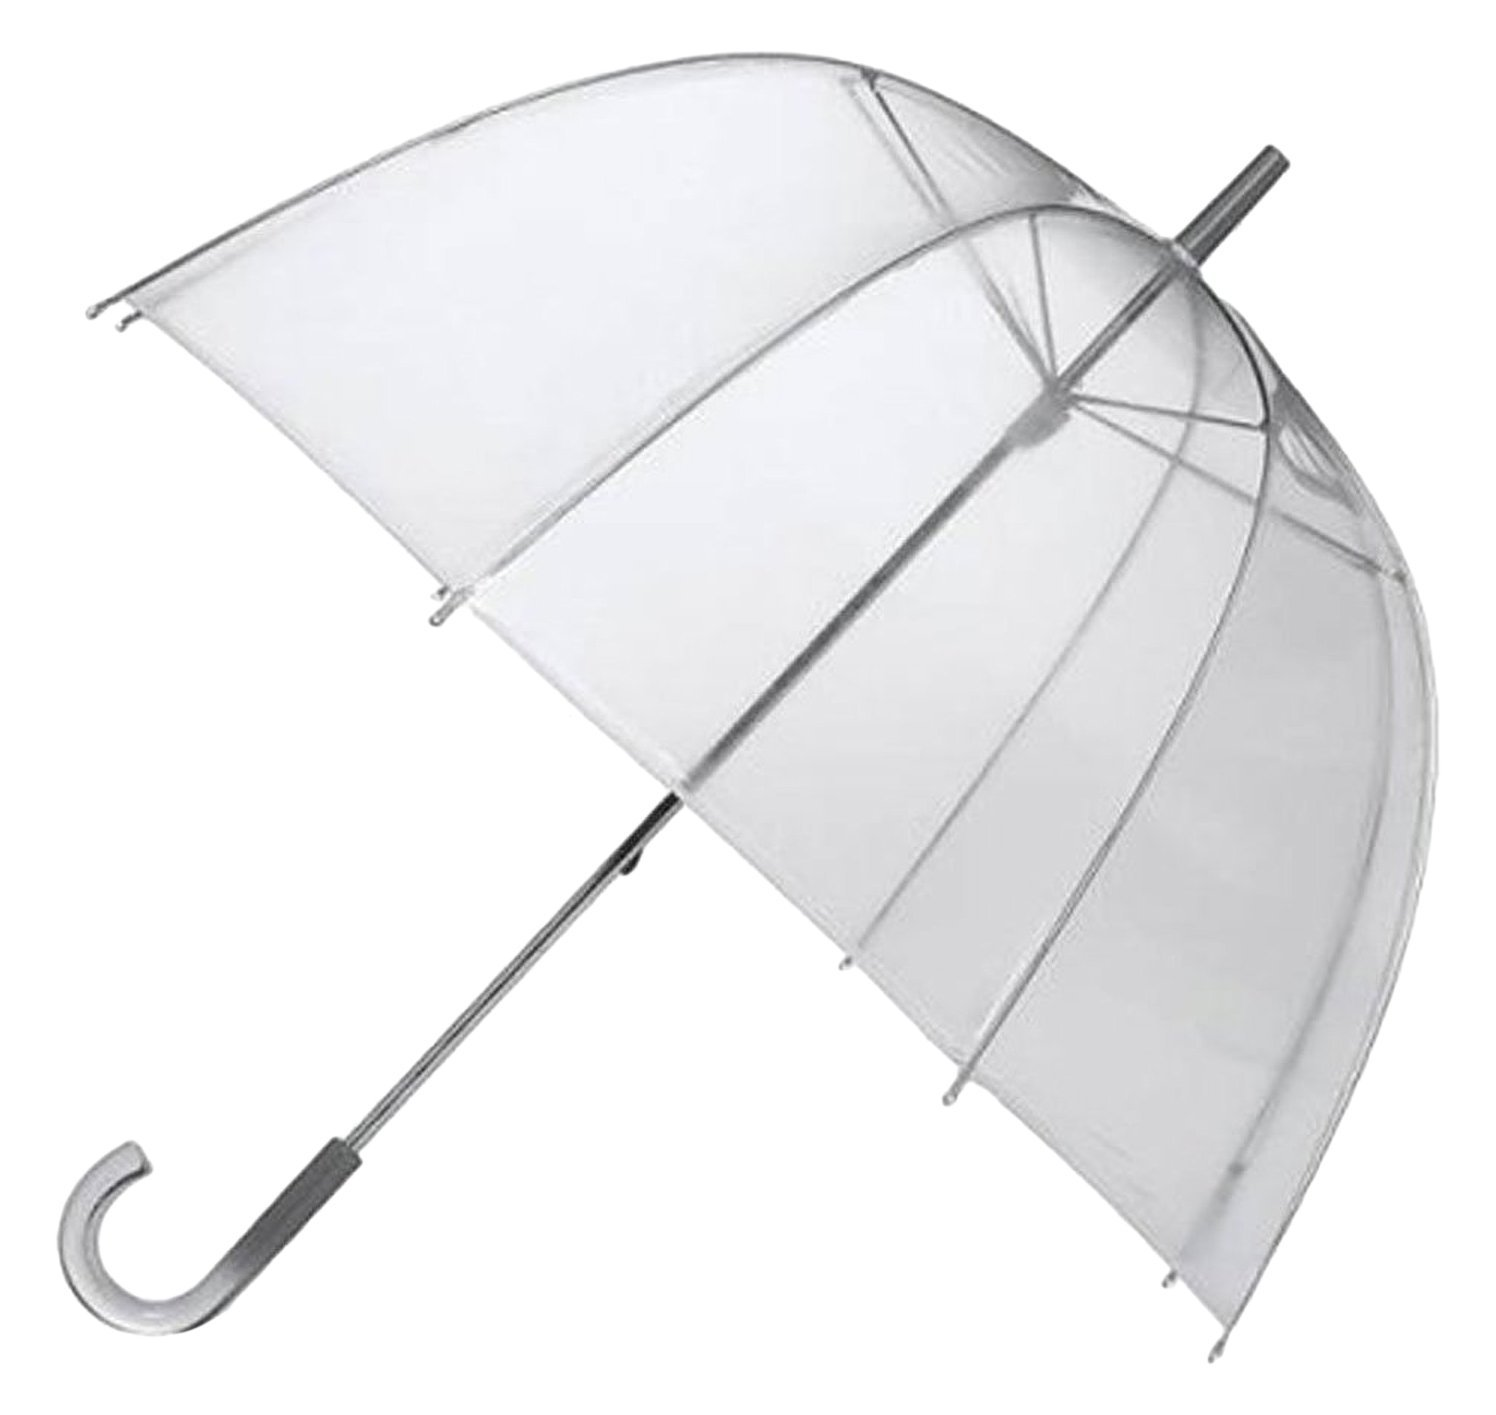 46'' Clear Dome/Bubble Umbrellas - Pack of 10 - Perfect for Weddings and Events